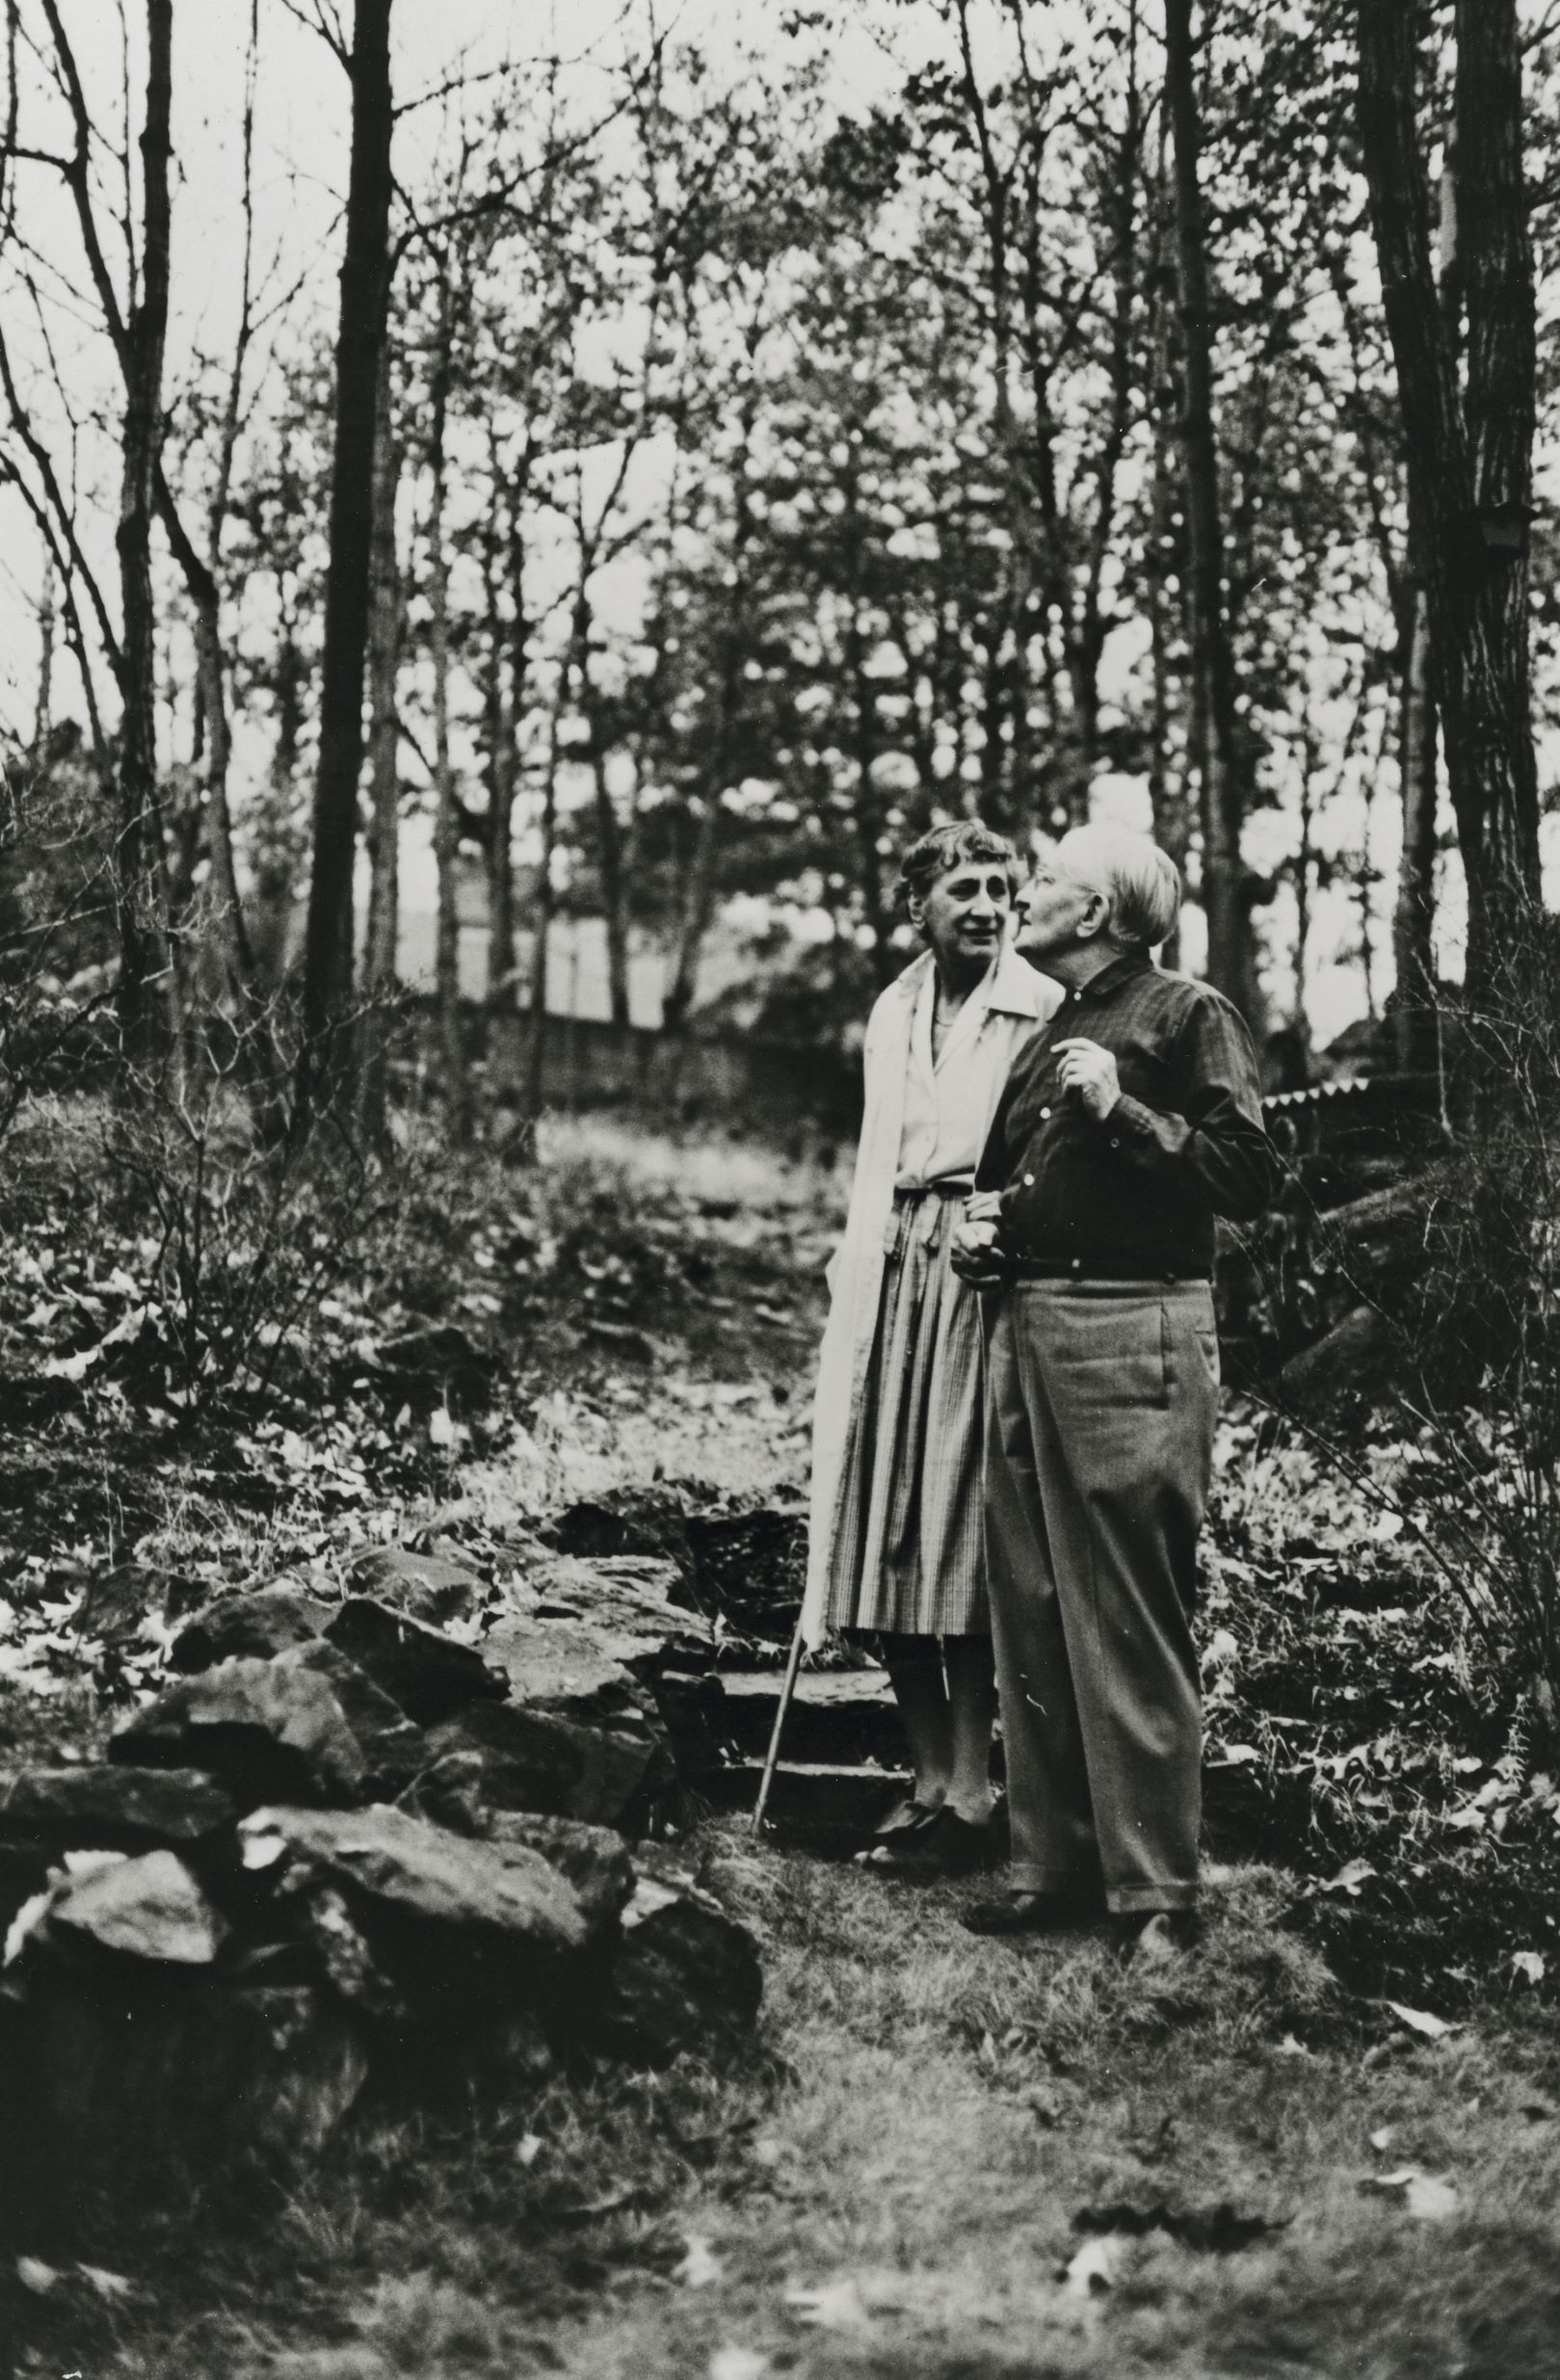 Anni and Josef Albers in the garden of their home at 8 North Forest Circle, New Haven, Connecticut, c. 1967. © Sedat Pakay. Courtesy of the Josef and Anni Albers Foundation